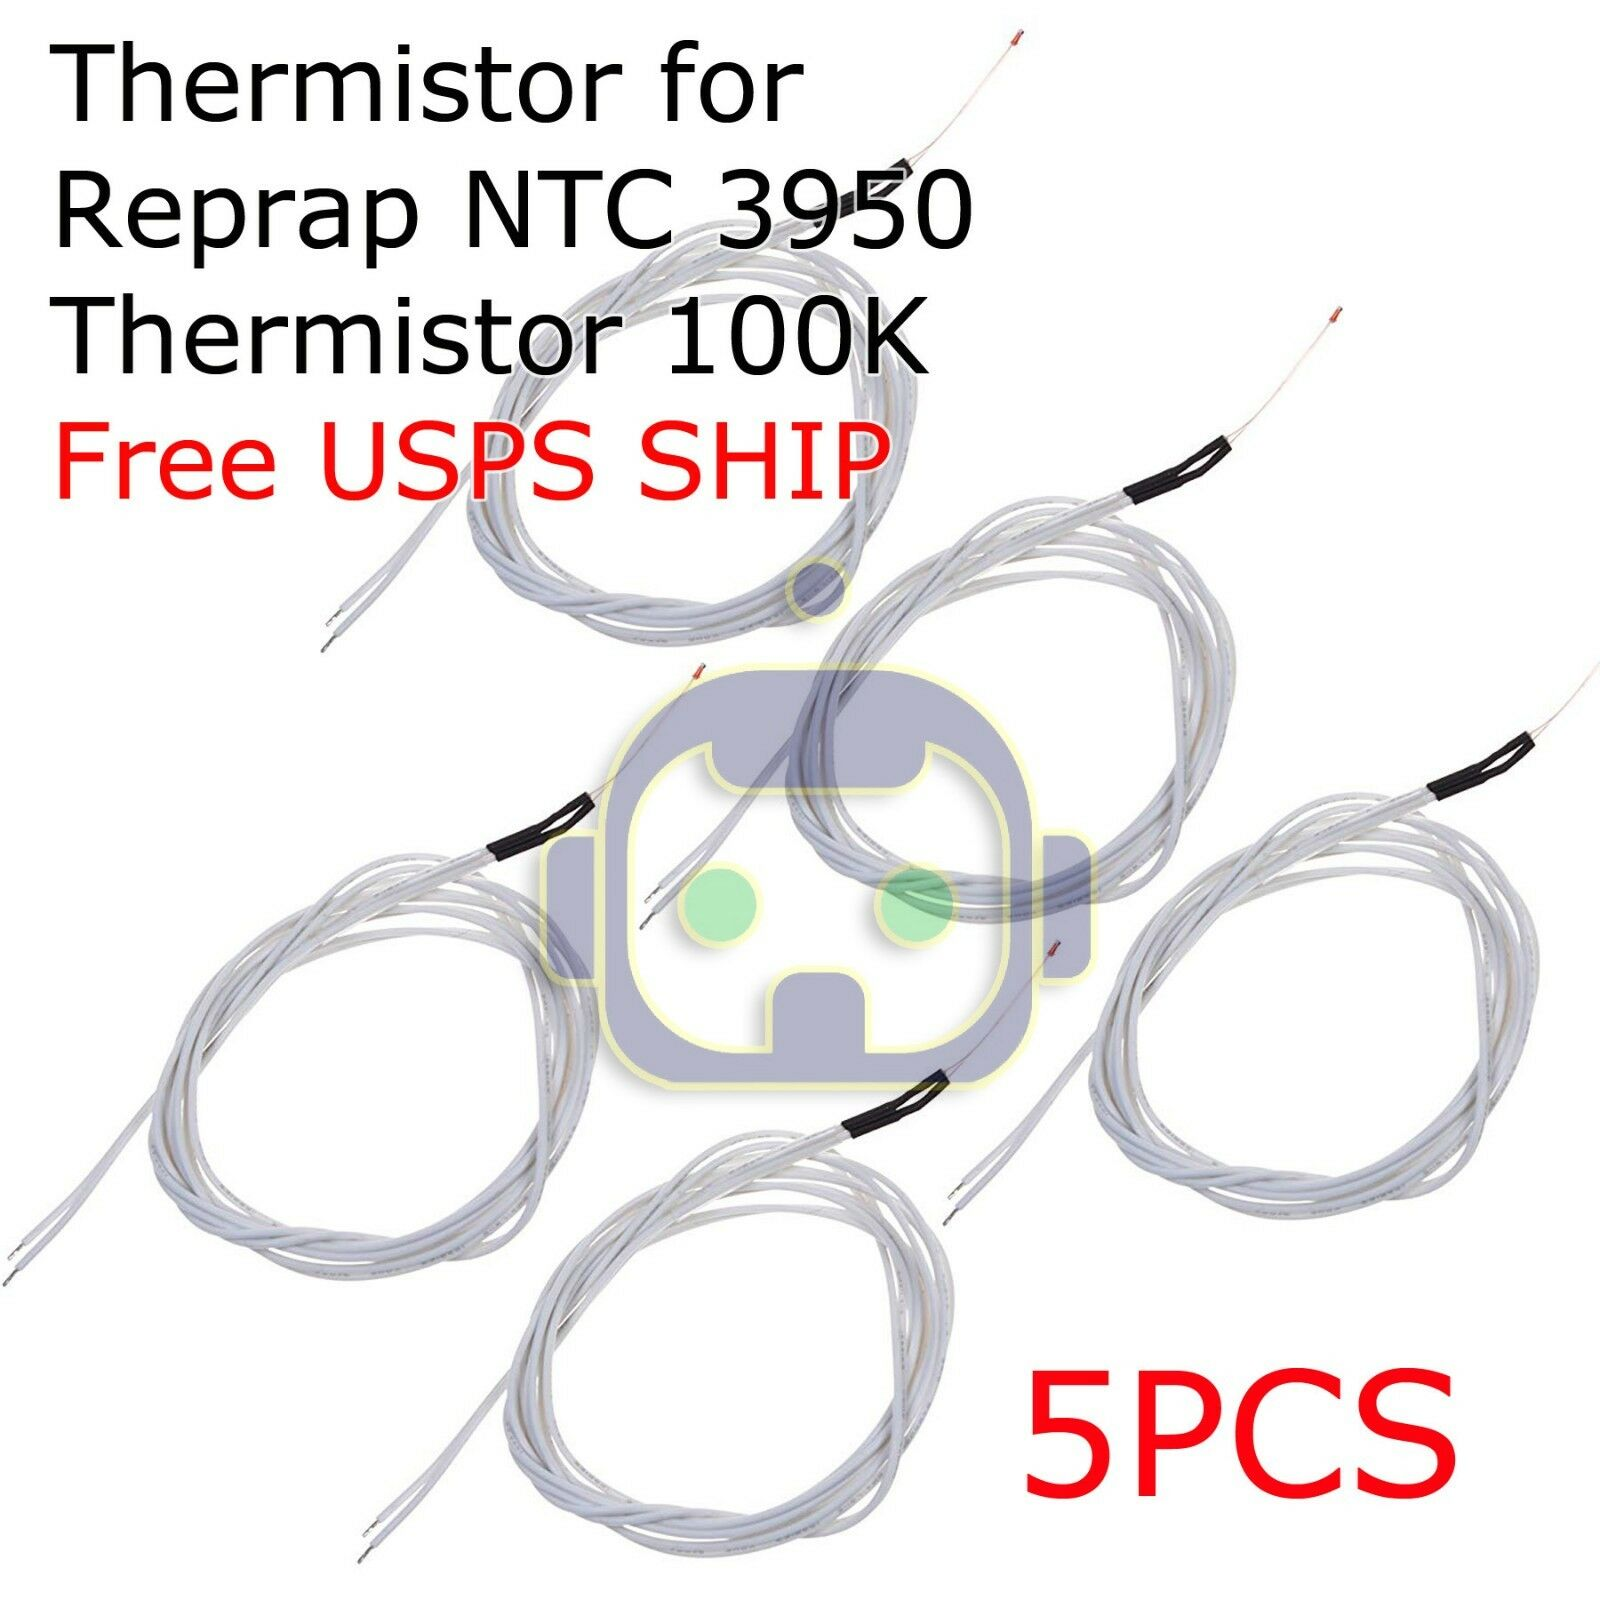 5pcs New Reprap NTC 3950 Thermistor 100K with 1 Meter wire for 3D Printer N211